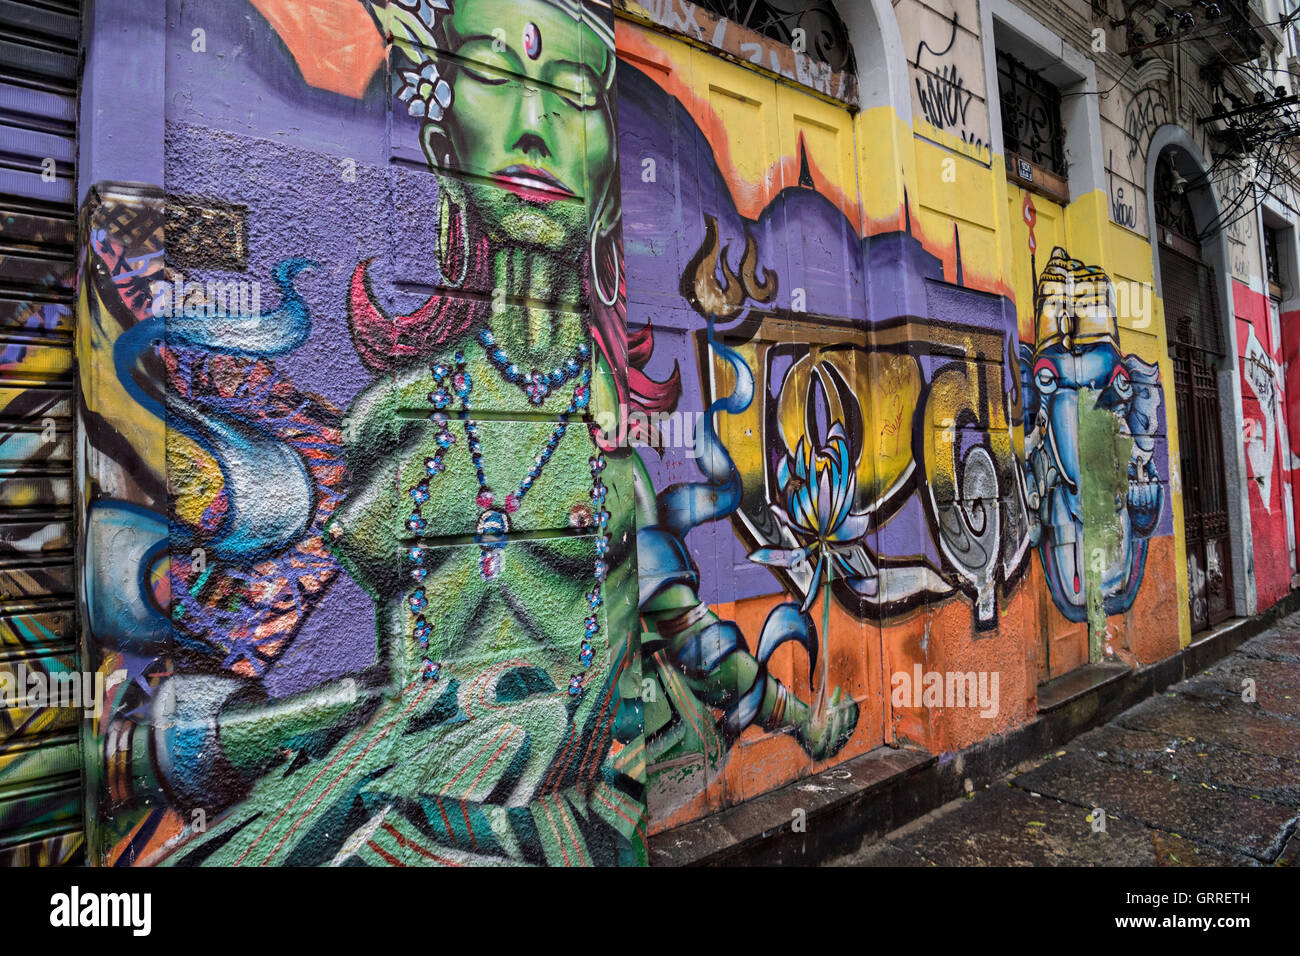 Graffiti art on a wall in the lapa neighborhood in rio de janeiro brazil since 2009 street art in brazil is legal if done with the consent of the building